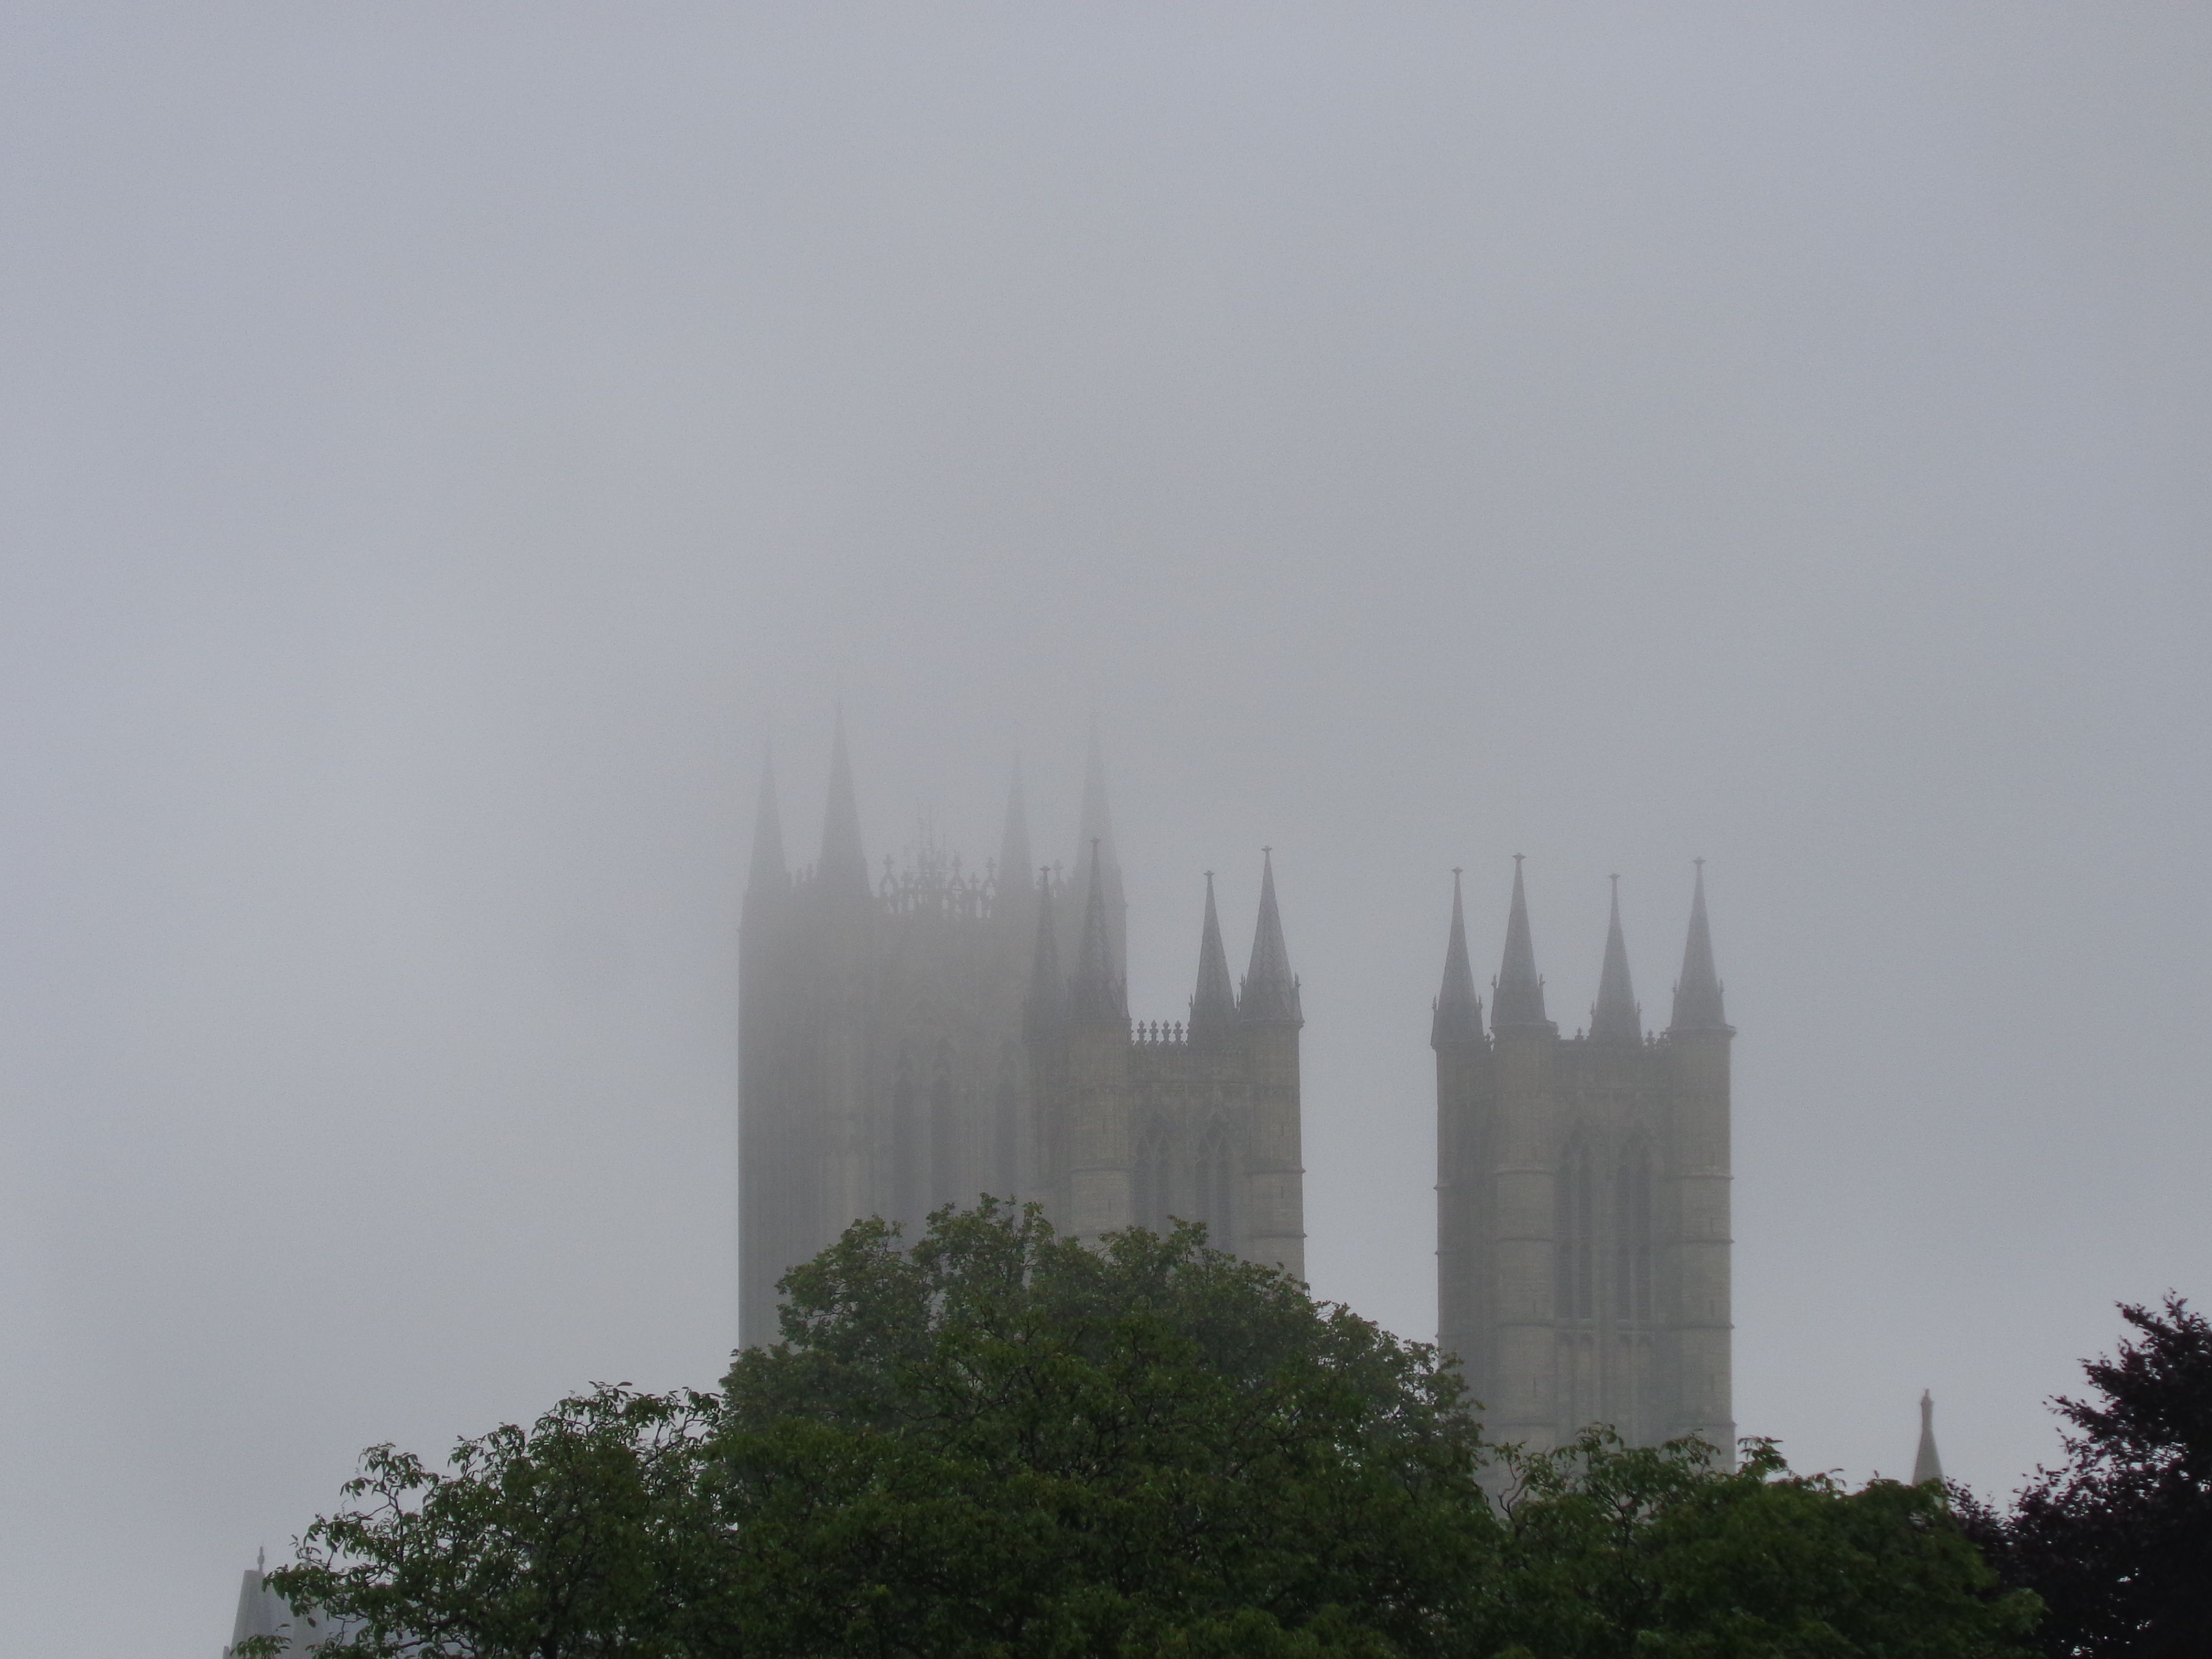 The misty spires of Lincoln Cathedral